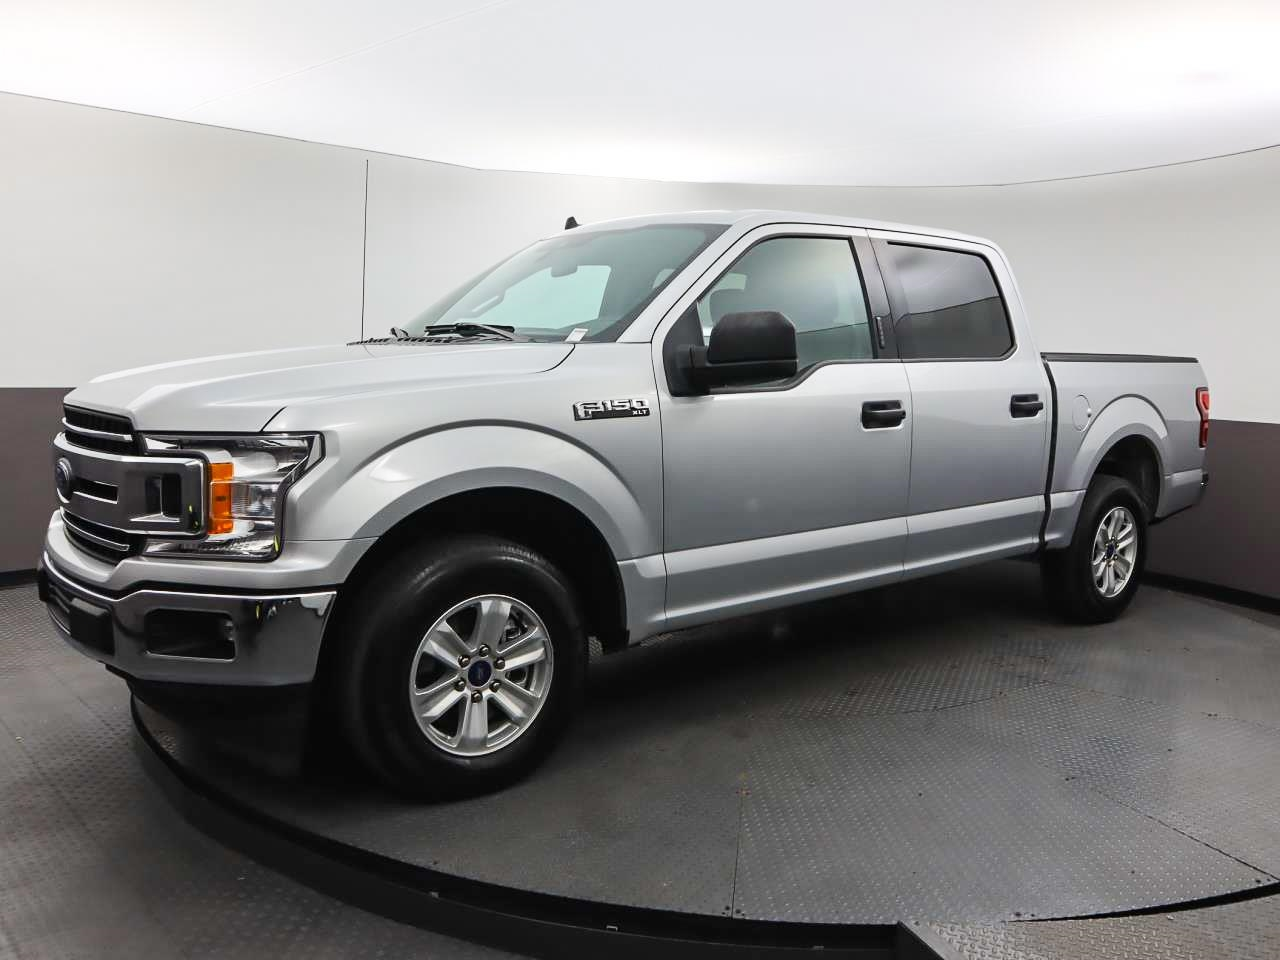 Used FORD F-150 2019 MIAMI XLT